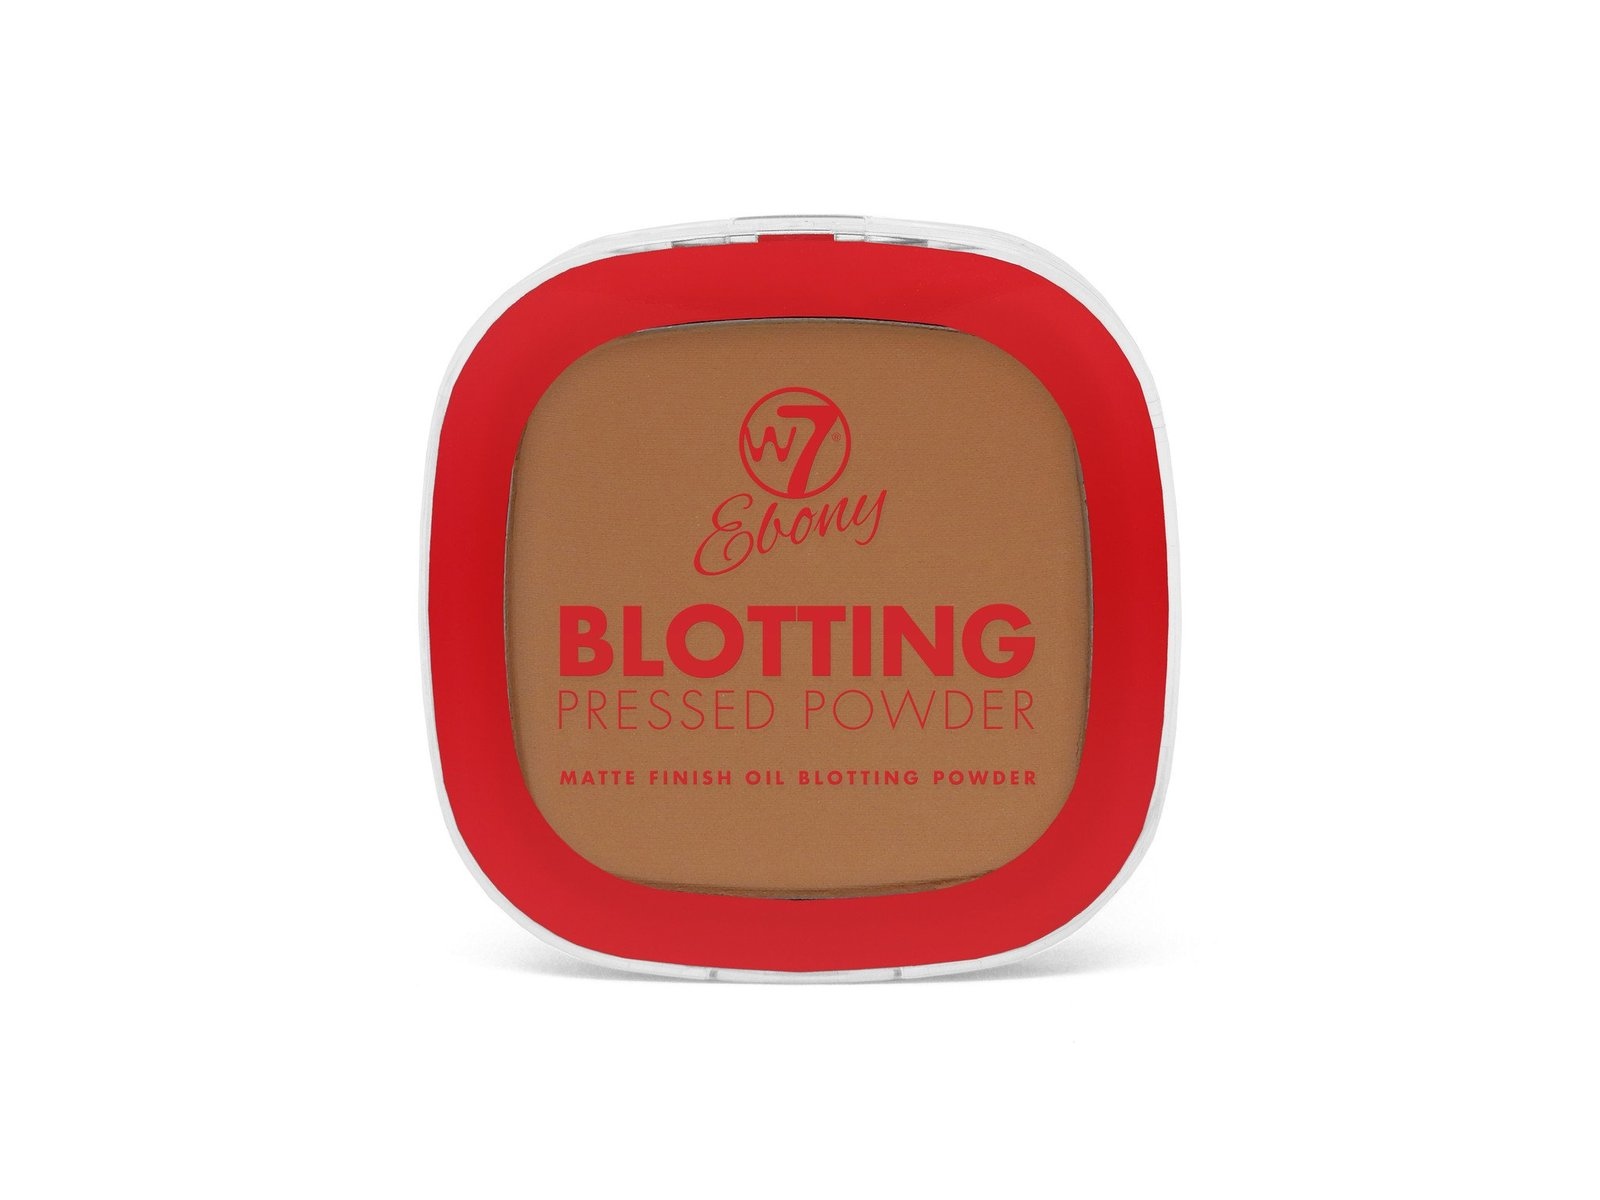 W7 Ebony Blotting Powder (Deep) image